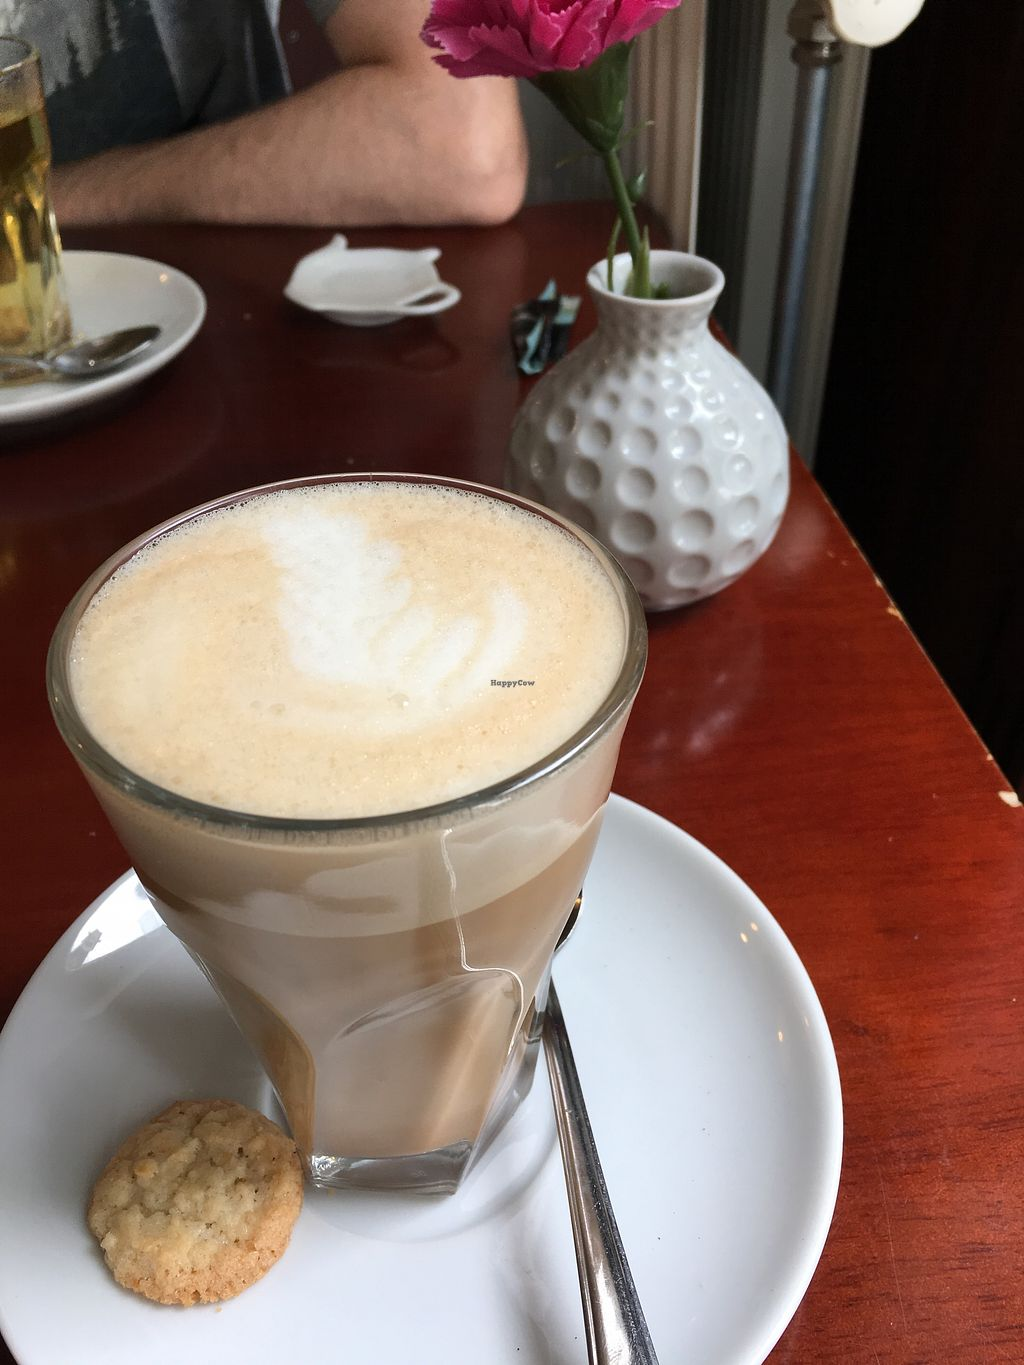 """Photo of Koffie ende Koeck  by <a href=""""/members/profile/vegan%20frog"""">vegan frog</a> <br/>Lemongrass chai latte <br/> July 1, 2017  - <a href='/contact/abuse/image/46128/275698'>Report</a>"""